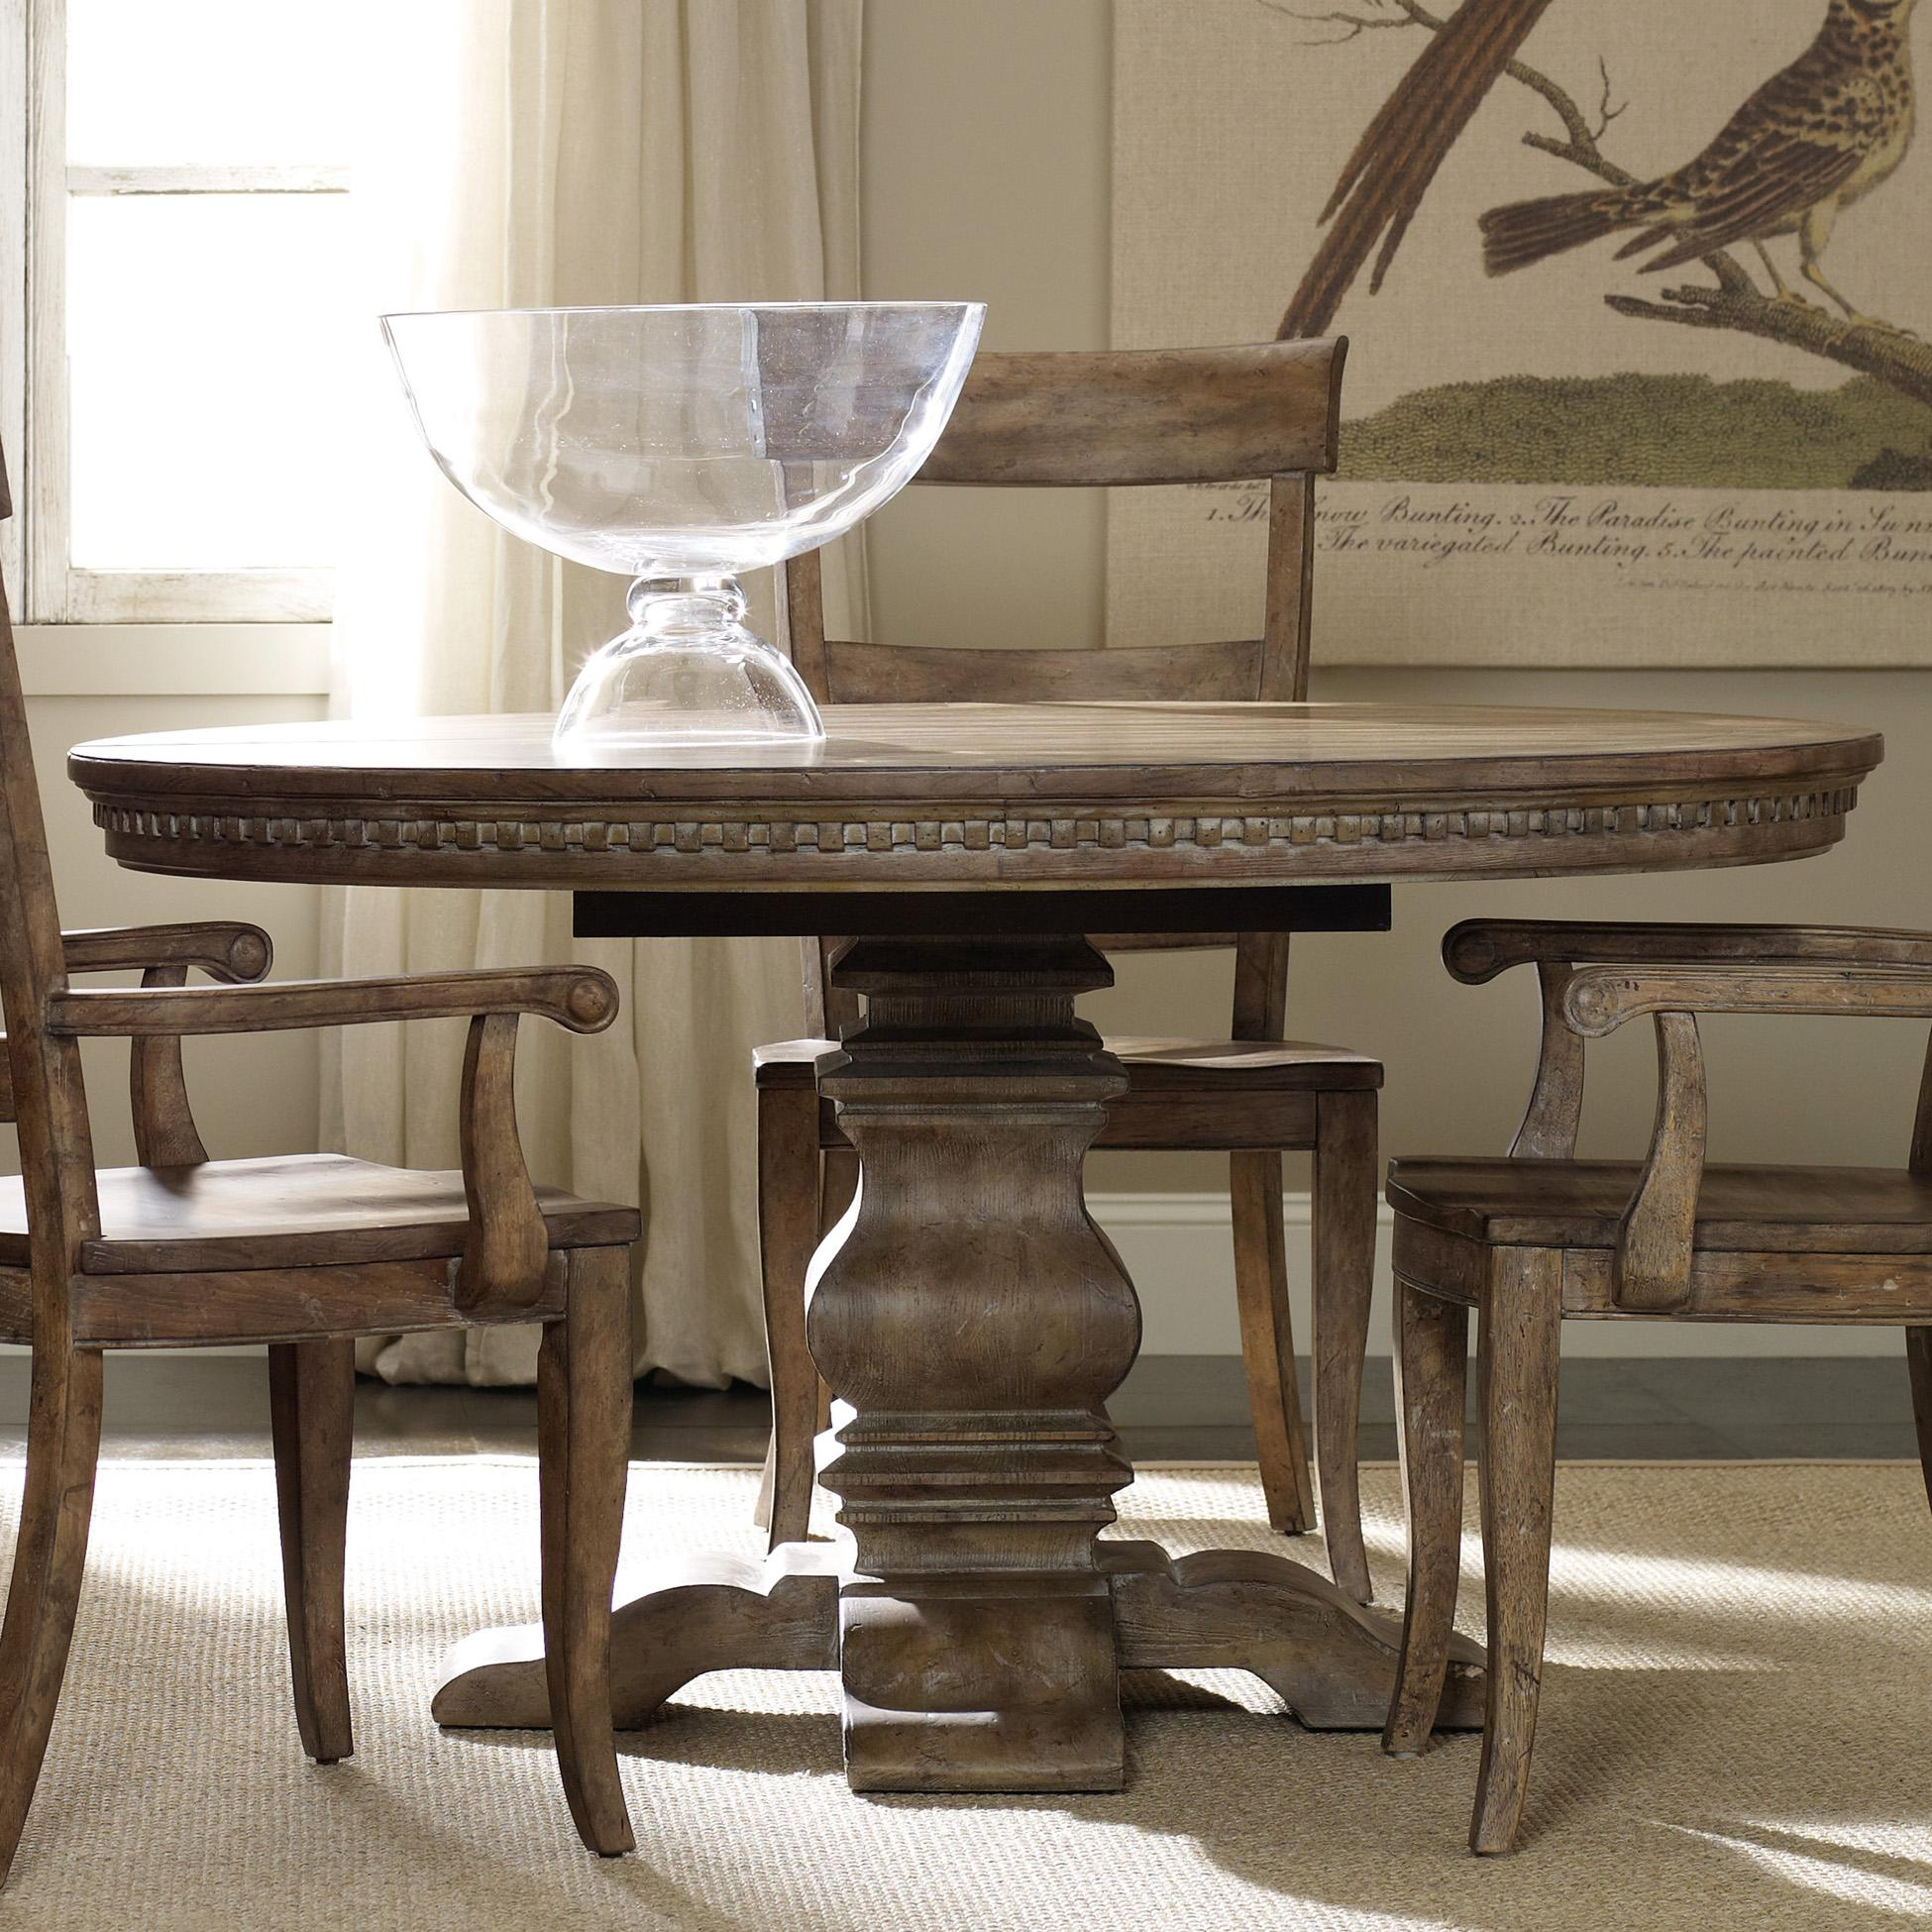 Hooker Furniture Sorella Pedestal Dining Table - Item Number 5107-75203 & Hooker Furniture Sorella Round Dining Table with Pedestal Base and ...